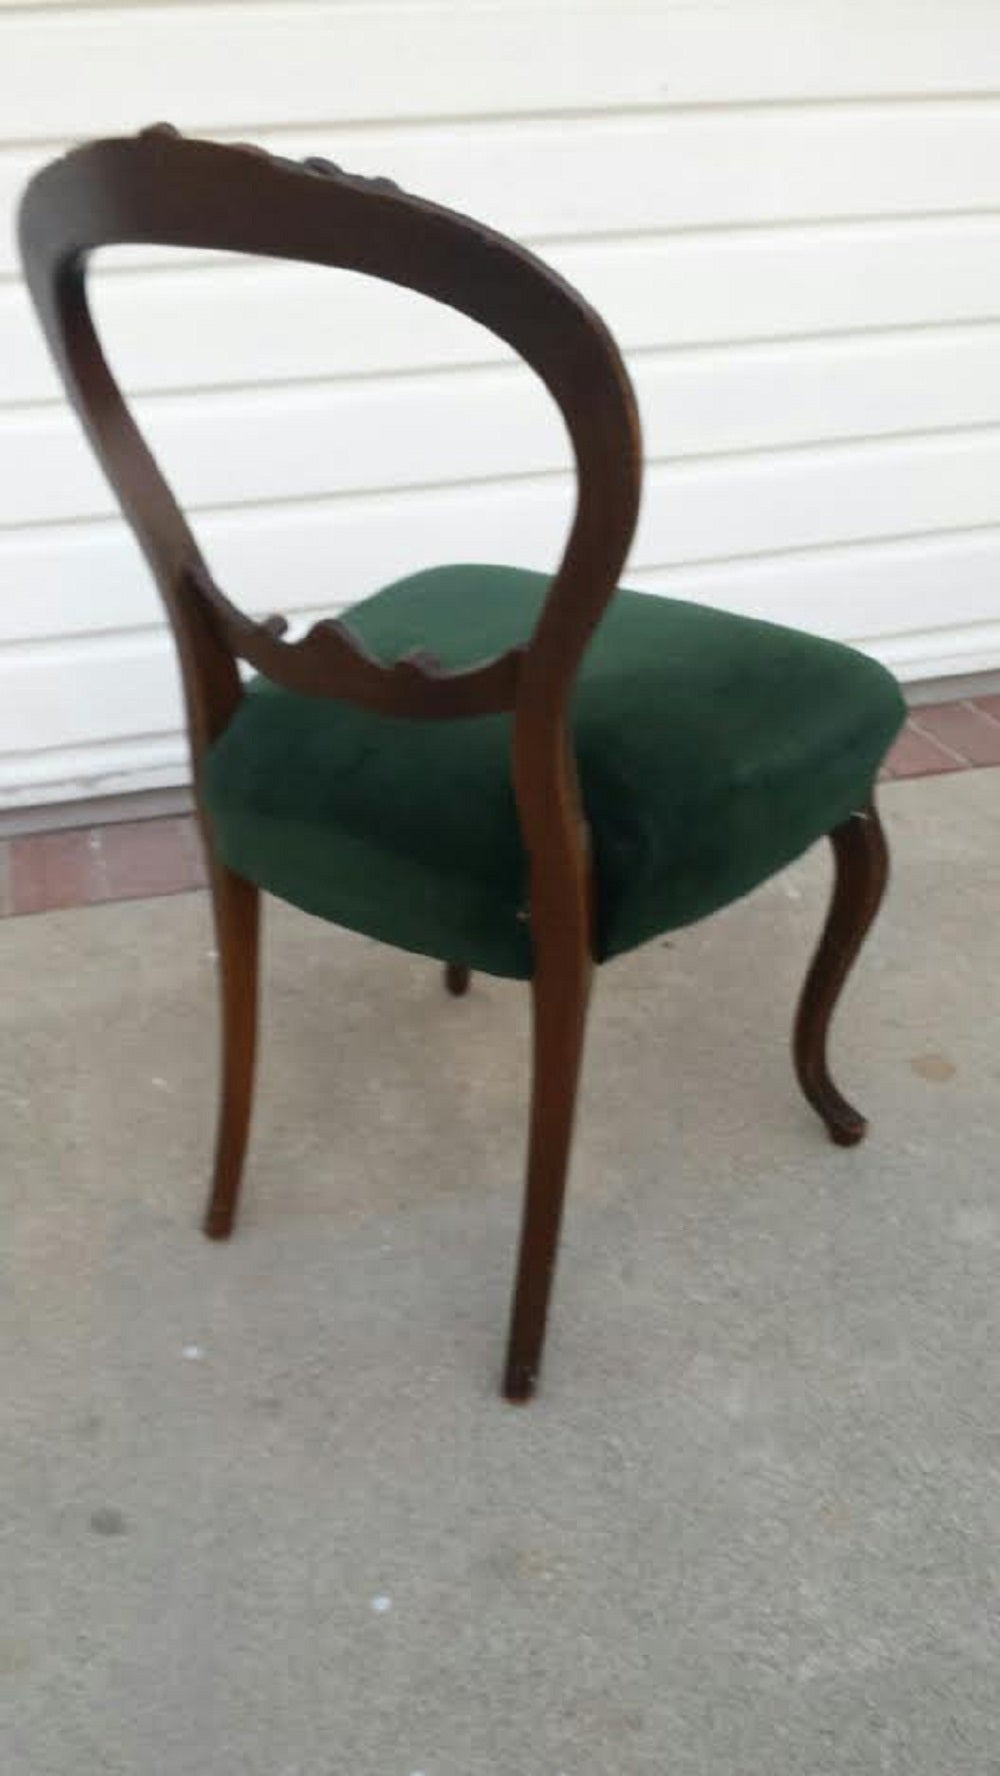 French Chair Louis XV Provincial Style Chair For Sale at